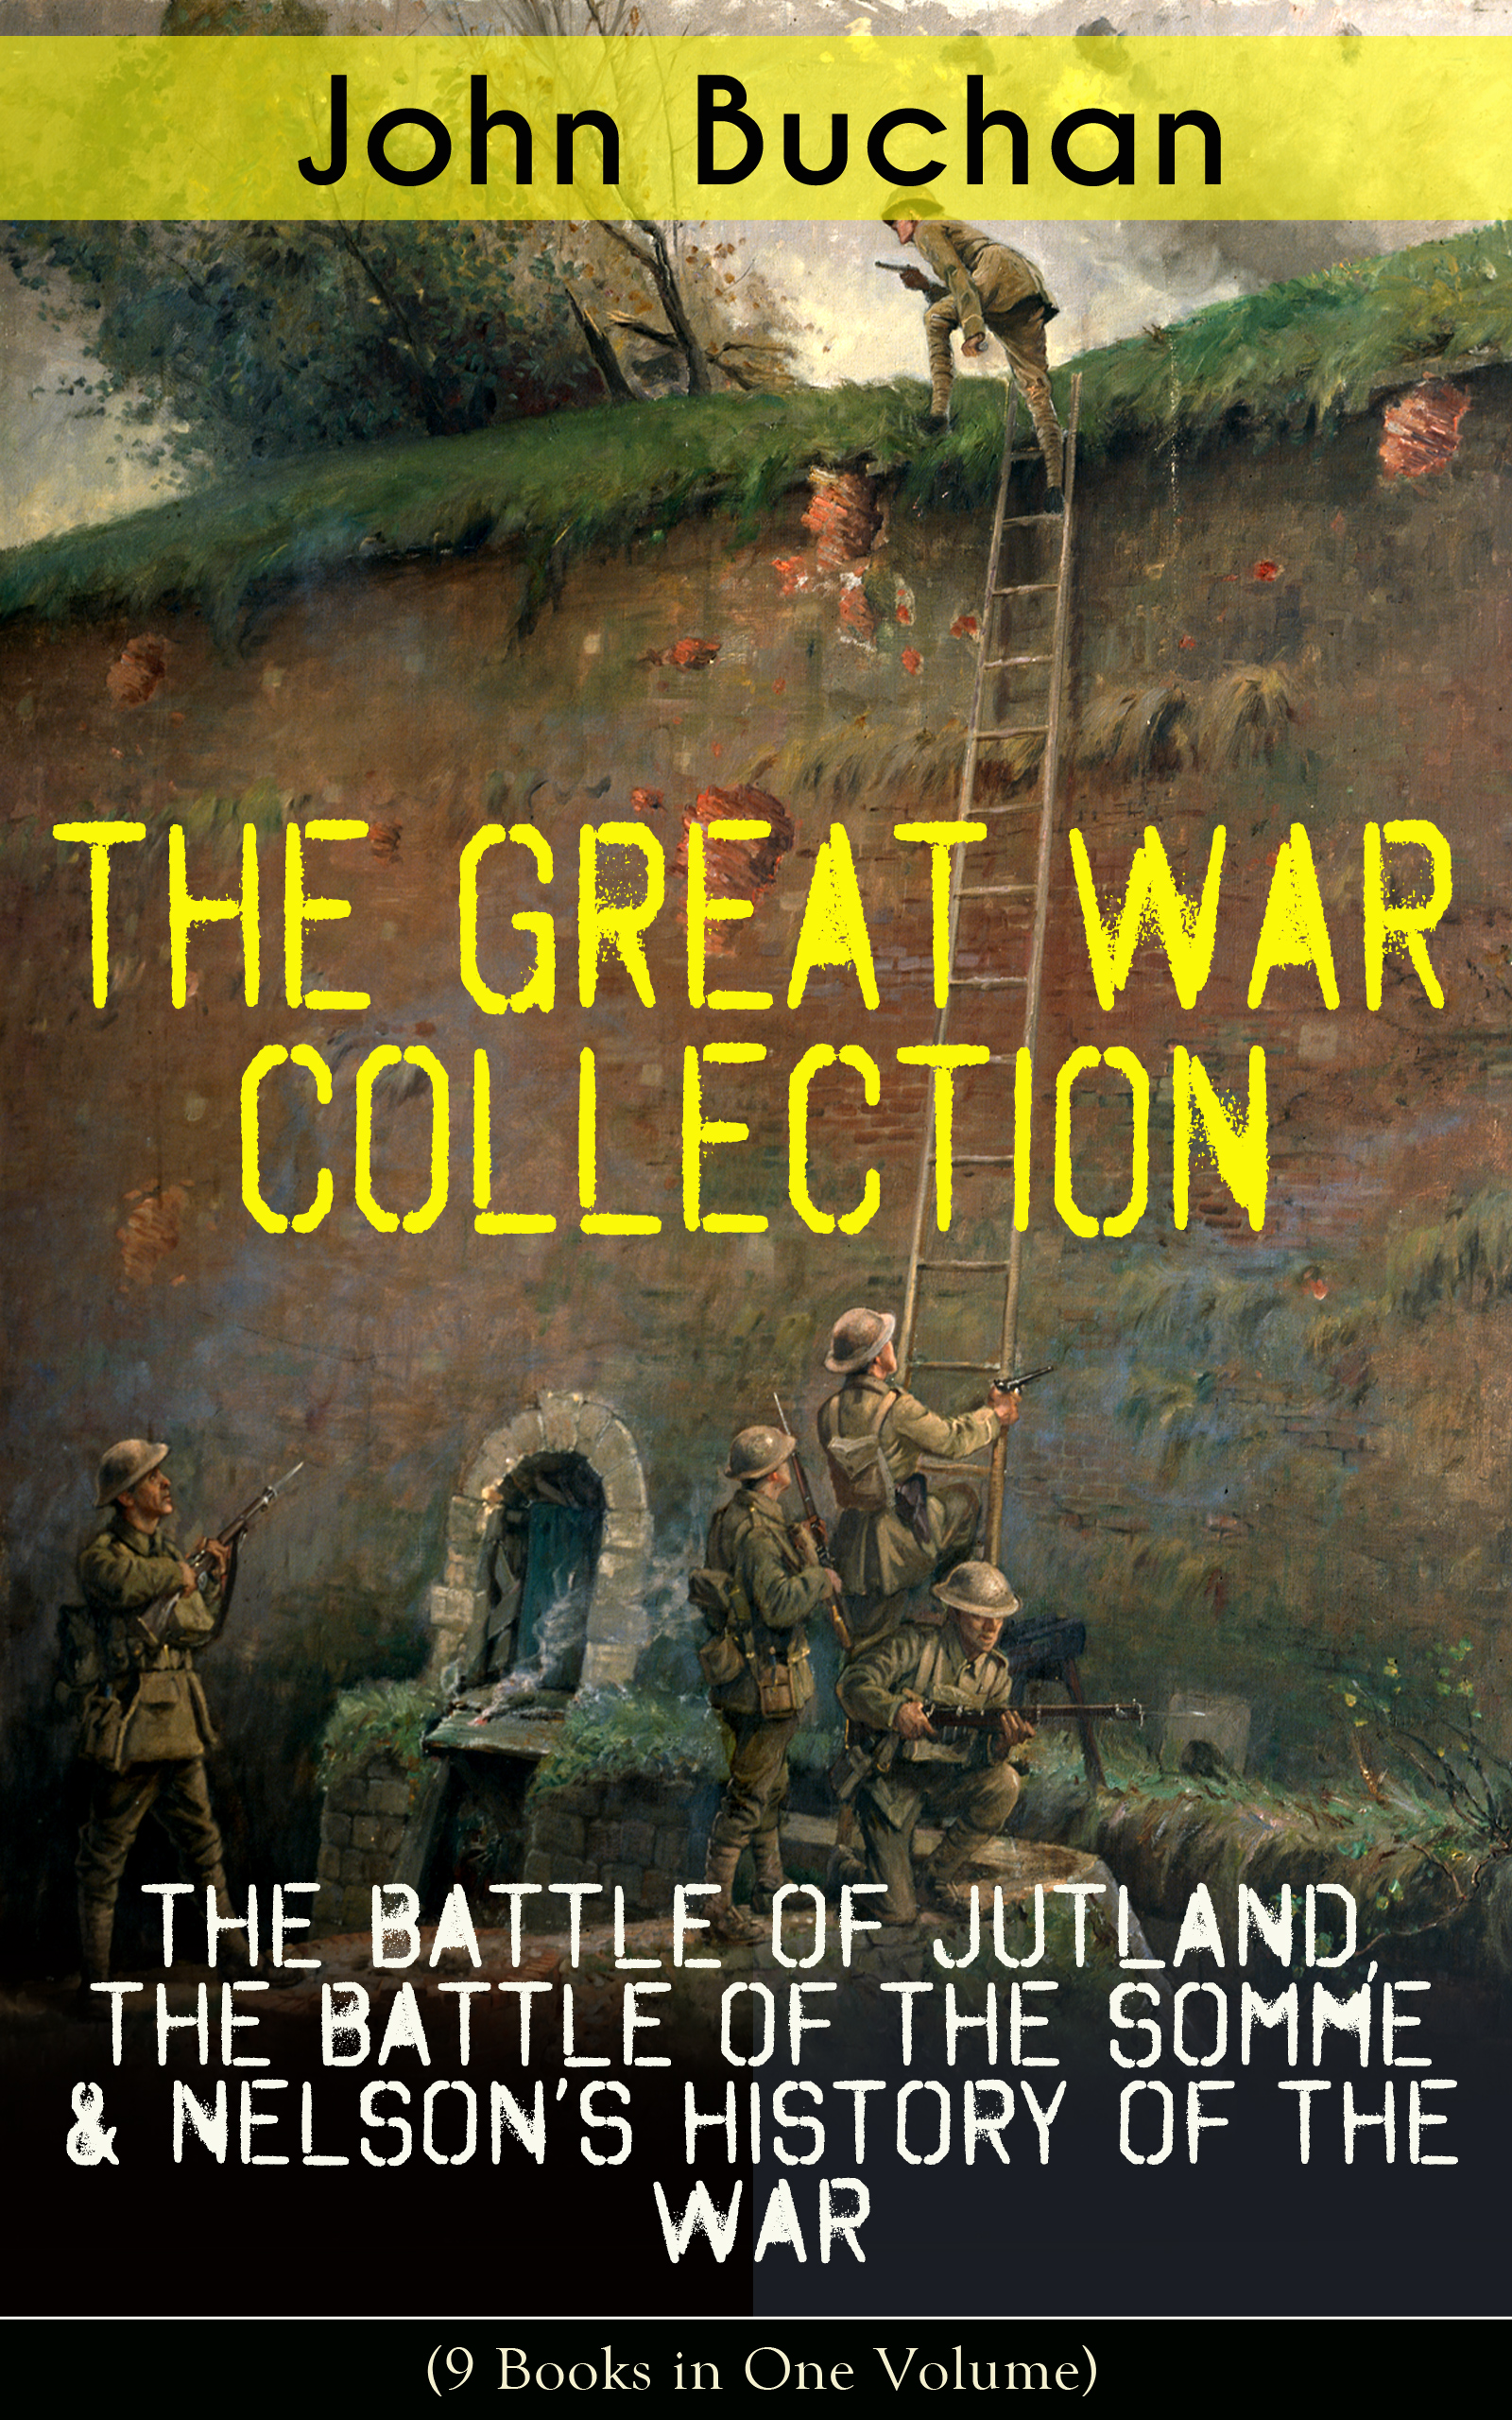 Buchan John THE GREAT WAR COLLECTION – The Battle of Jutland, The Battle of the Somme & Nelson's History of the War (9 Books in One Volume)